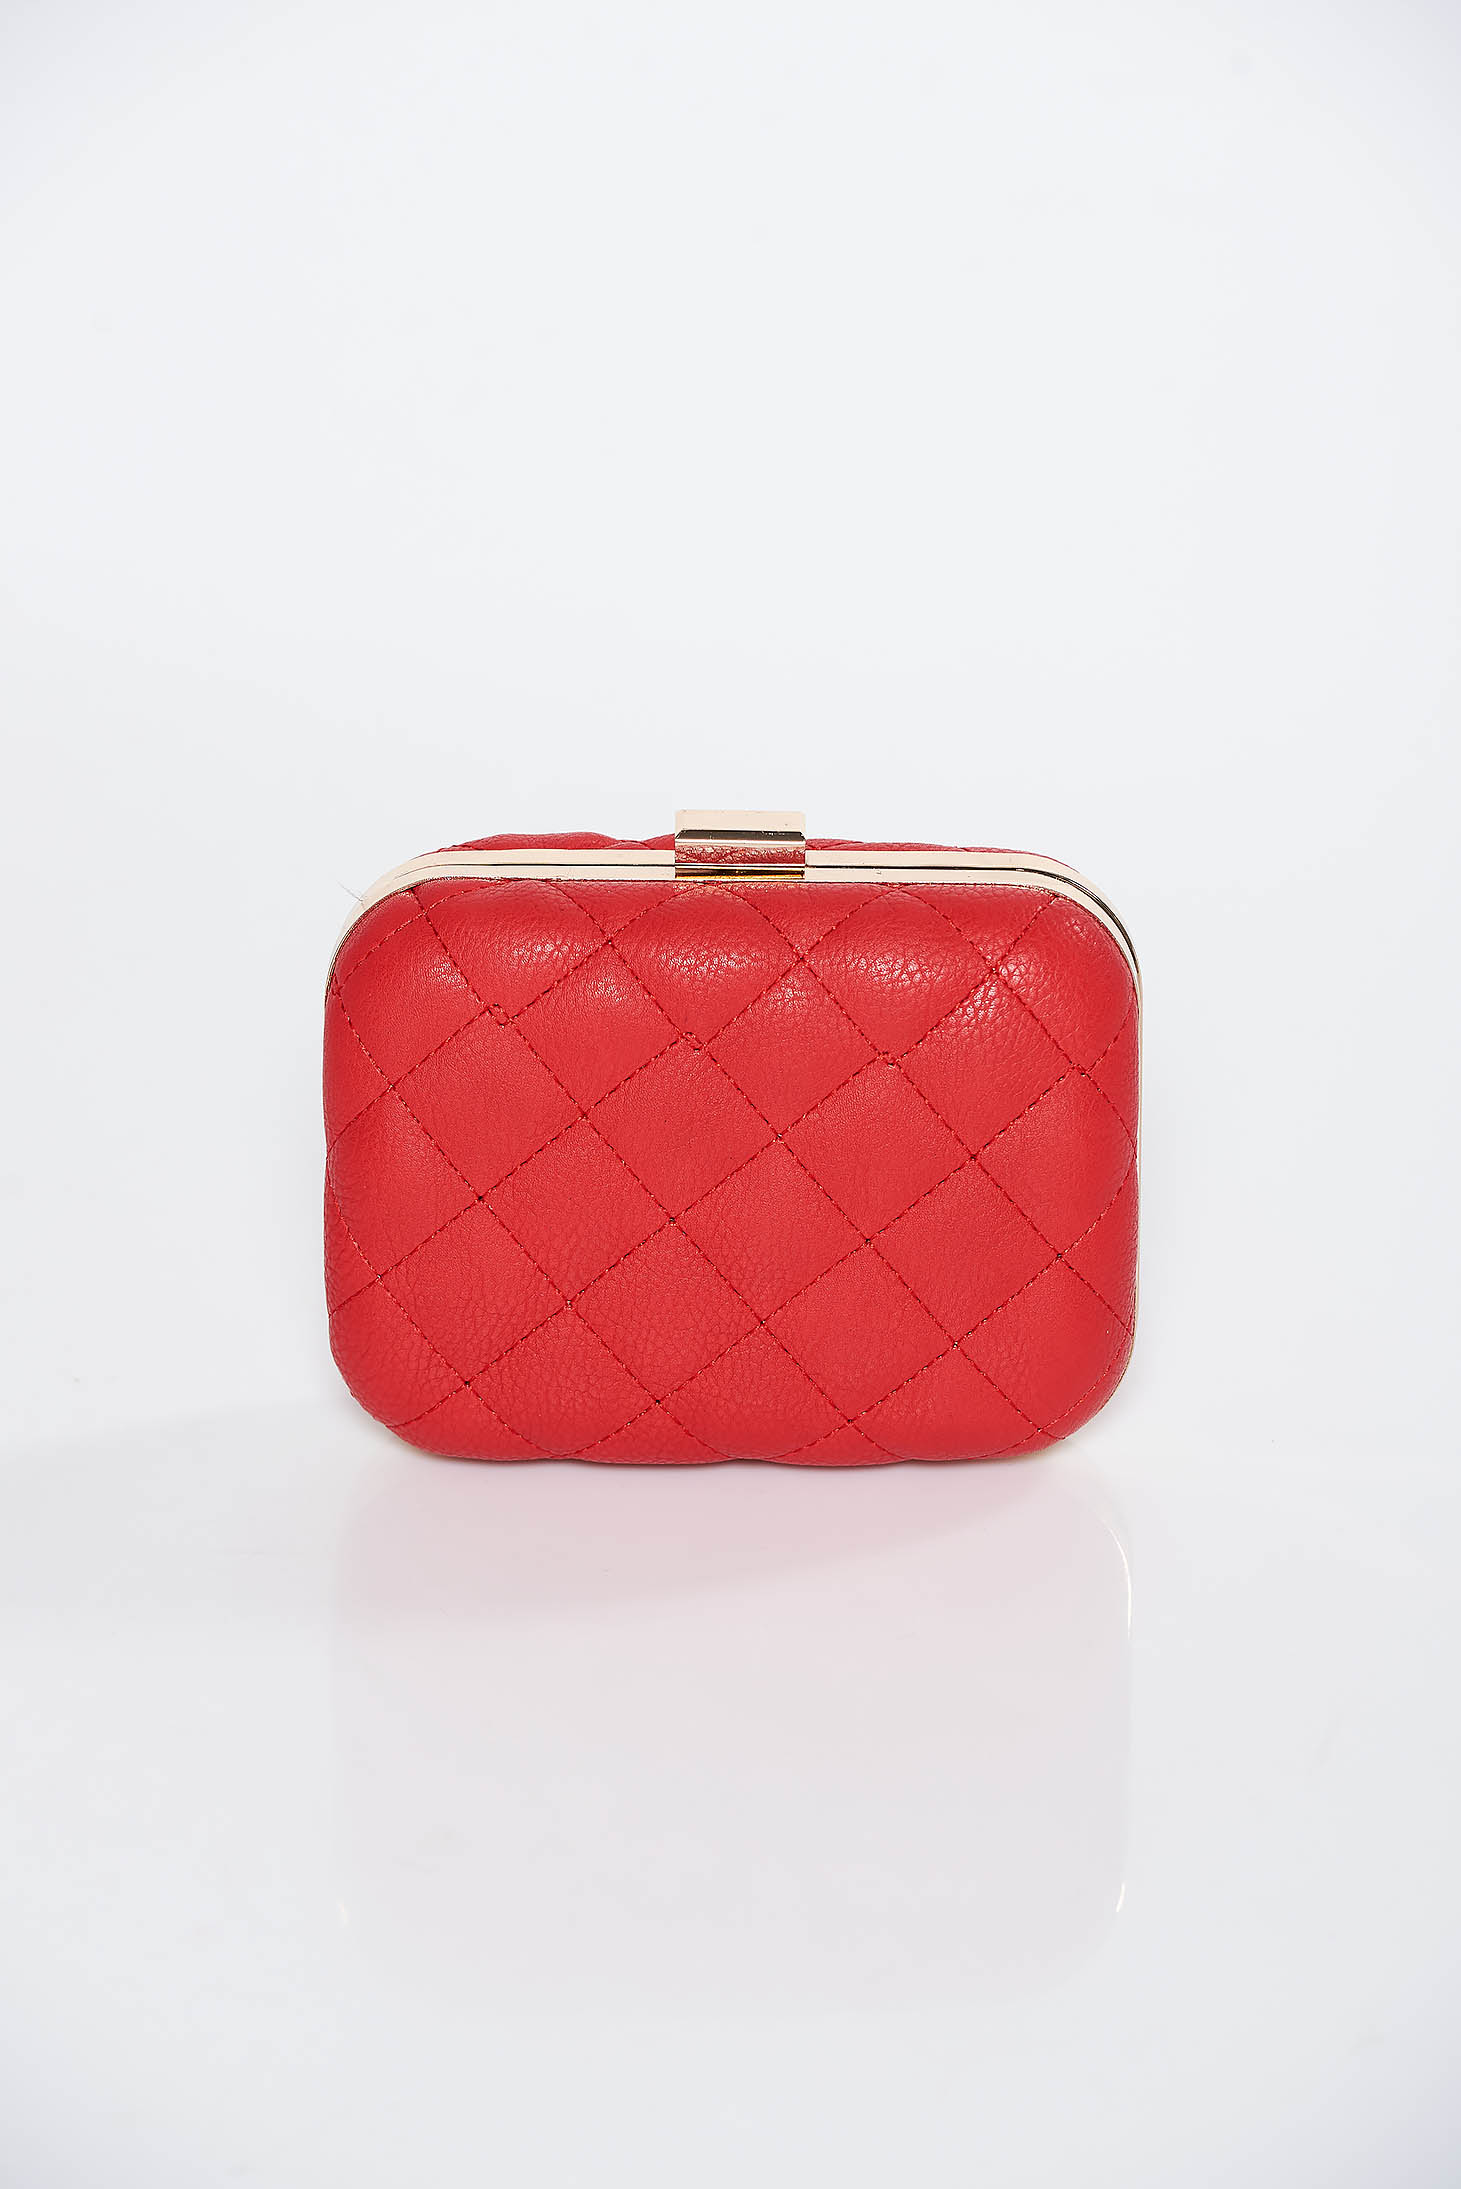 Red clutch bag from ecological leather long chain handle